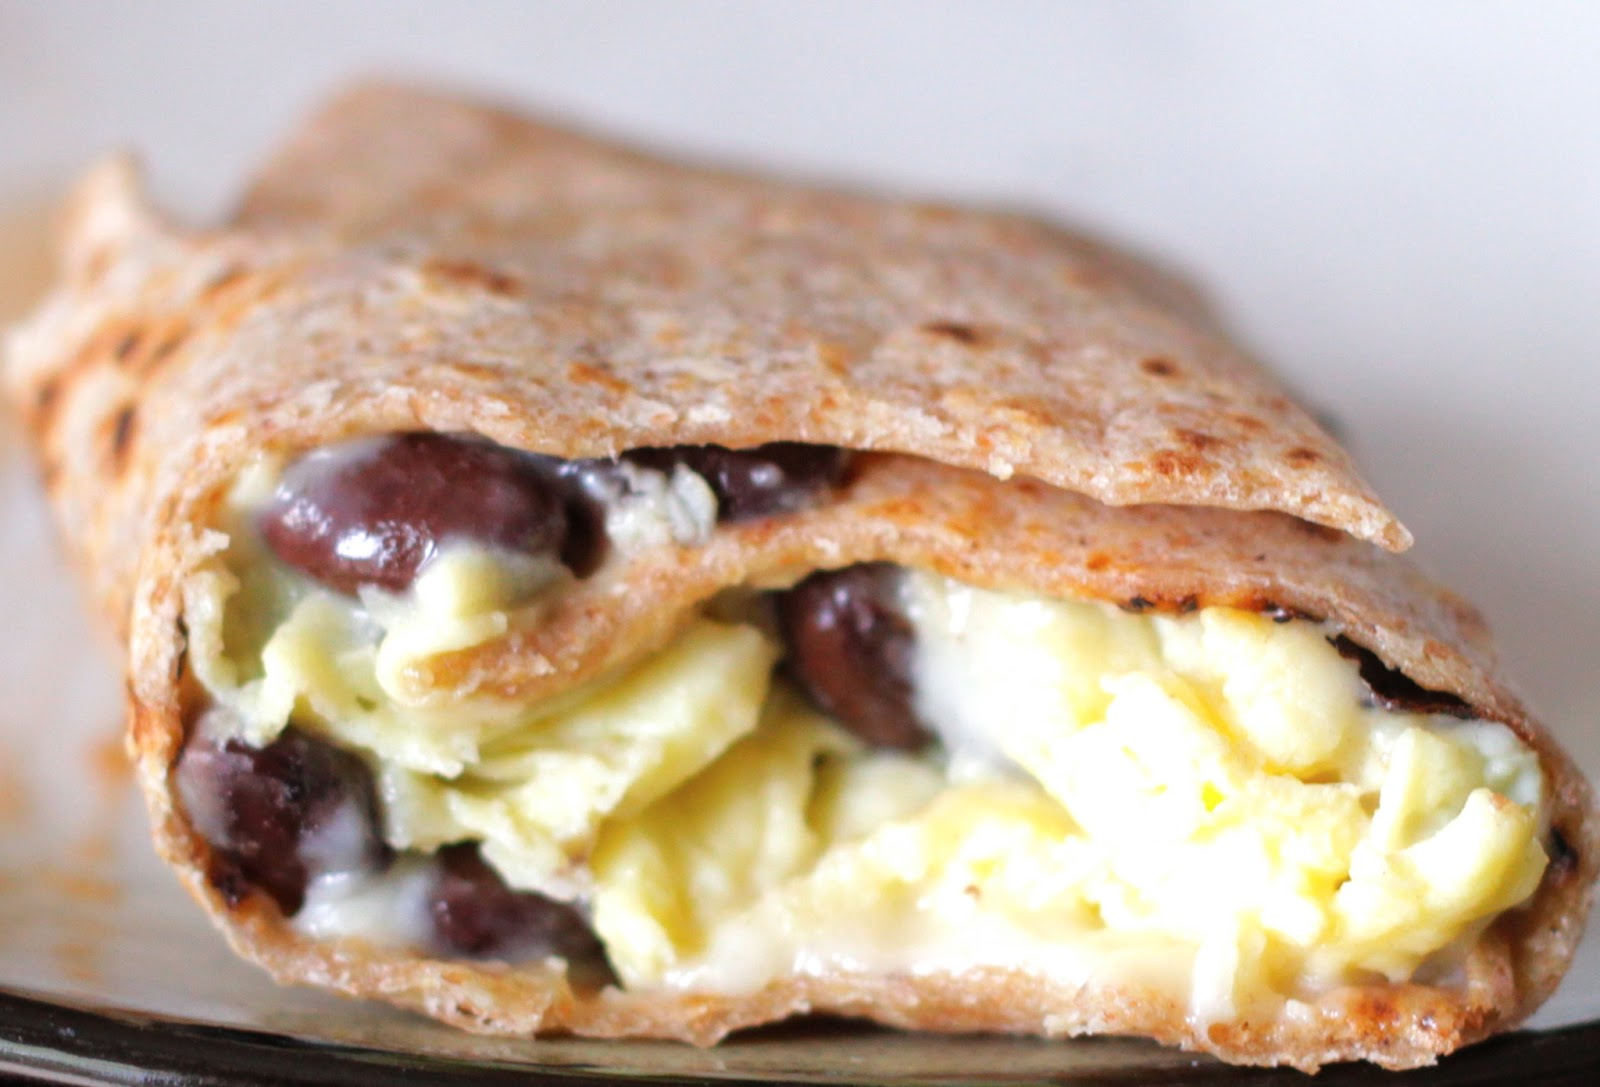 Vegetarian Tales of a Carnivore: Egg and Black Bean Breakfast Burritos